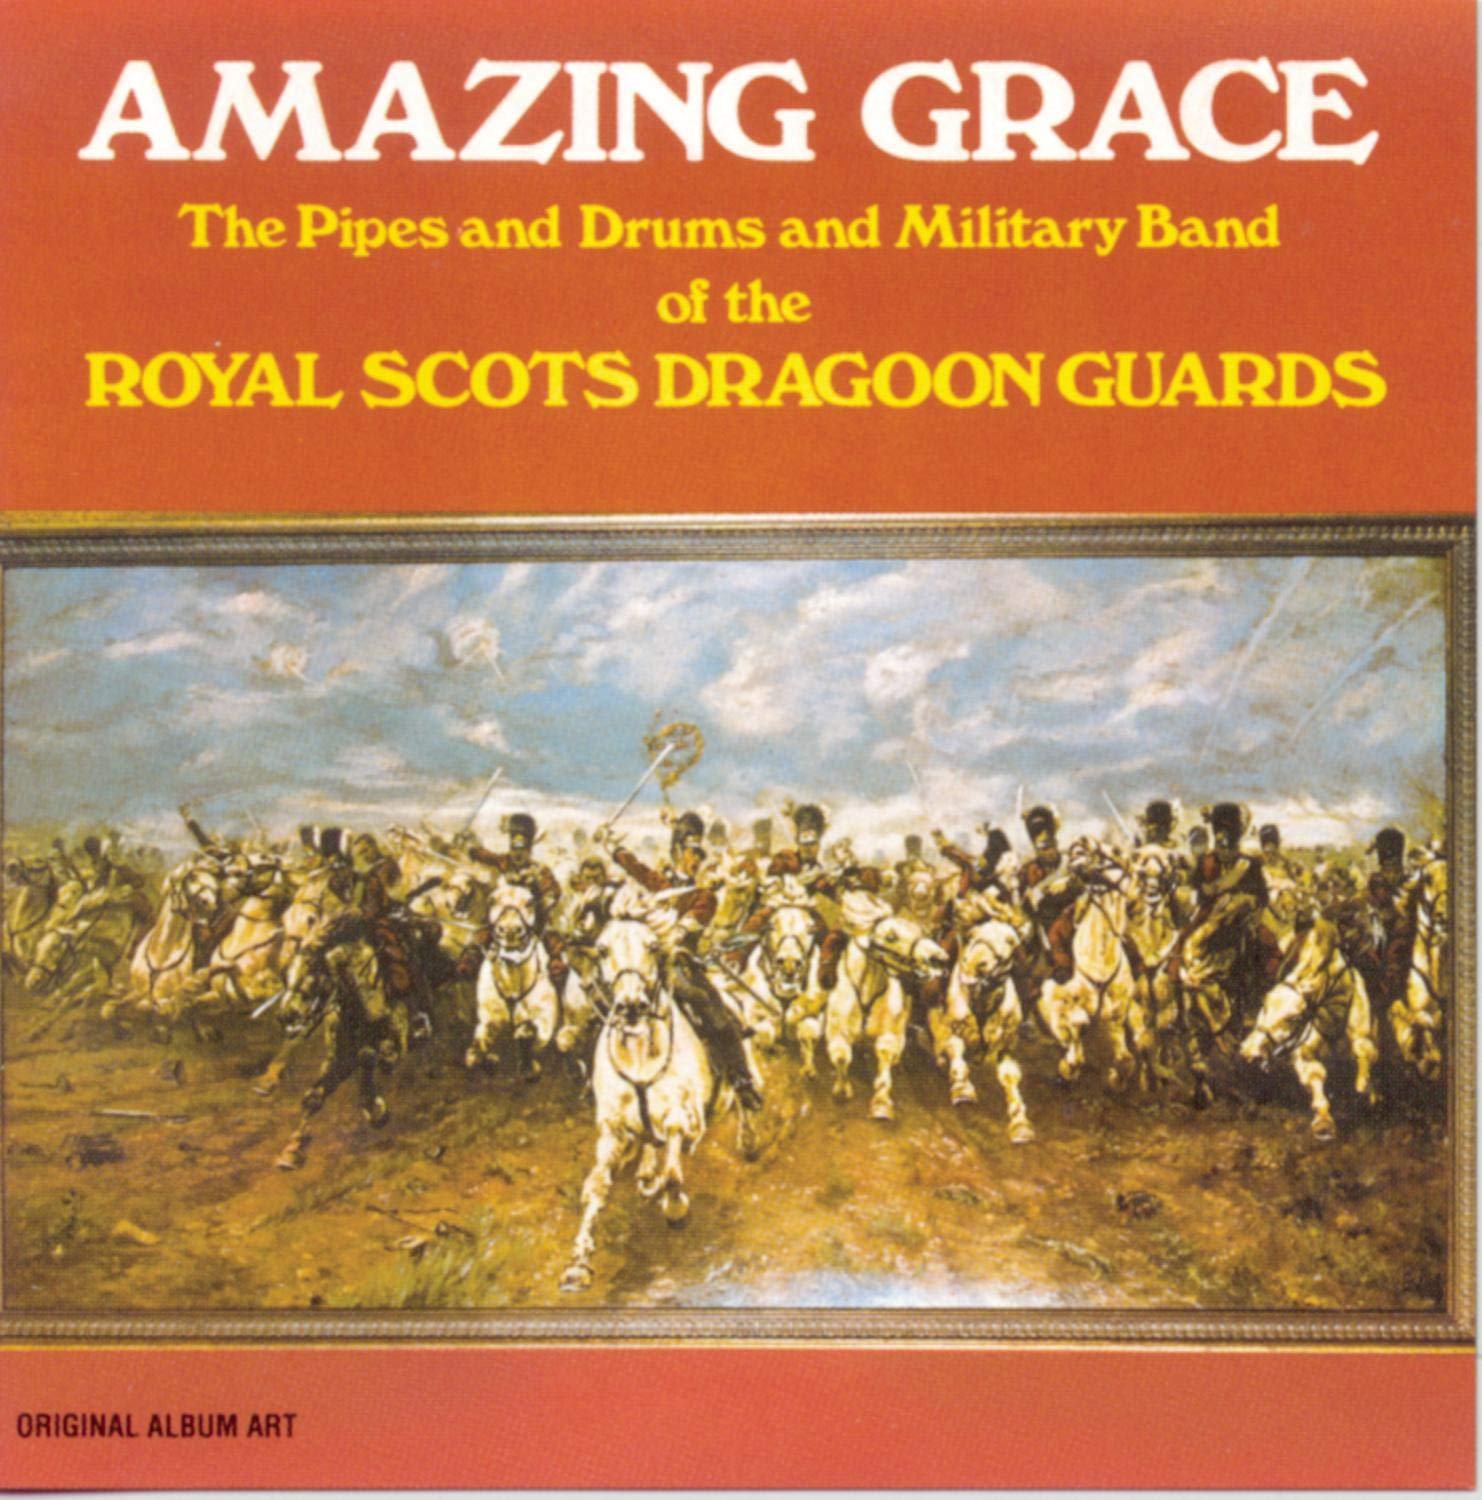 Amazing Grace: The Pipes and Drums and Military Band of the Royal Scots Dragoon Guards by Sony Legacy